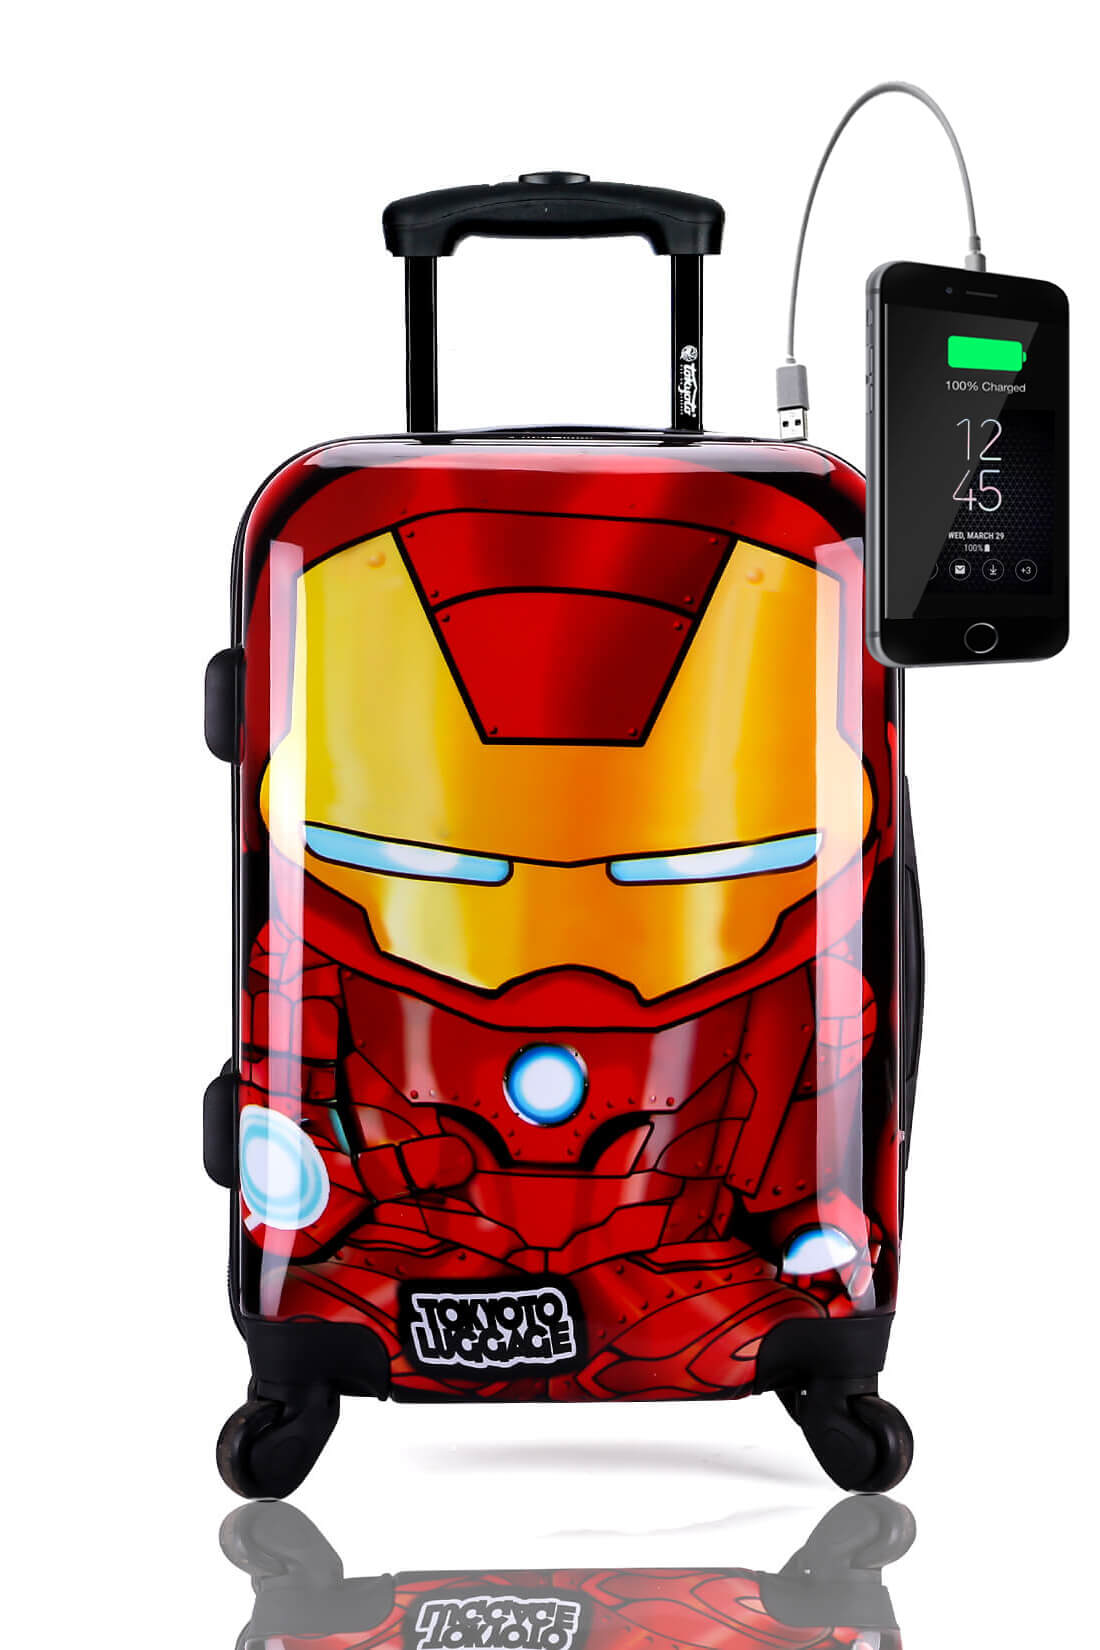 Childrens Kids Cabin Hand Luggage Carry On Trolley Suitcase IRON BOY